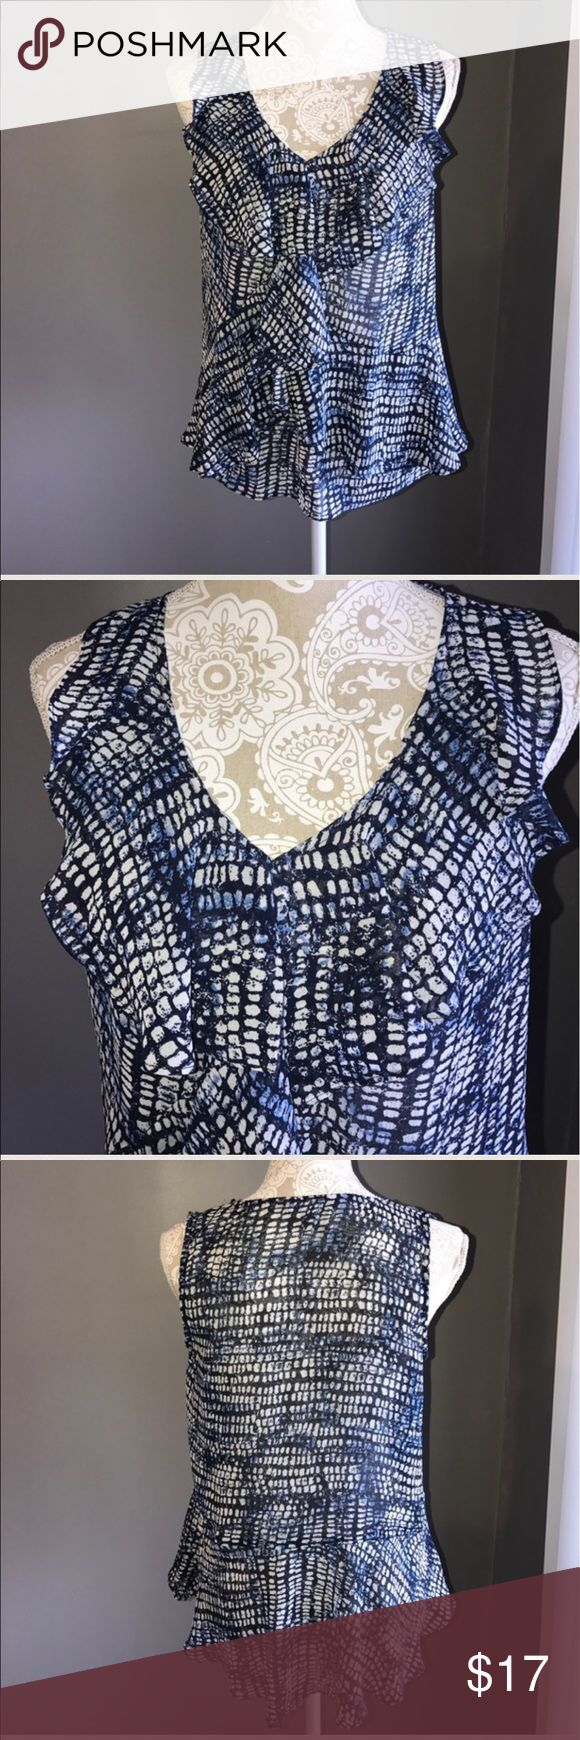 Daisy Fuentes Top ruffles in the right places S Daisy Fuentes Top ruffles in the right places in my opinion size S Daisy Fuentes Tops